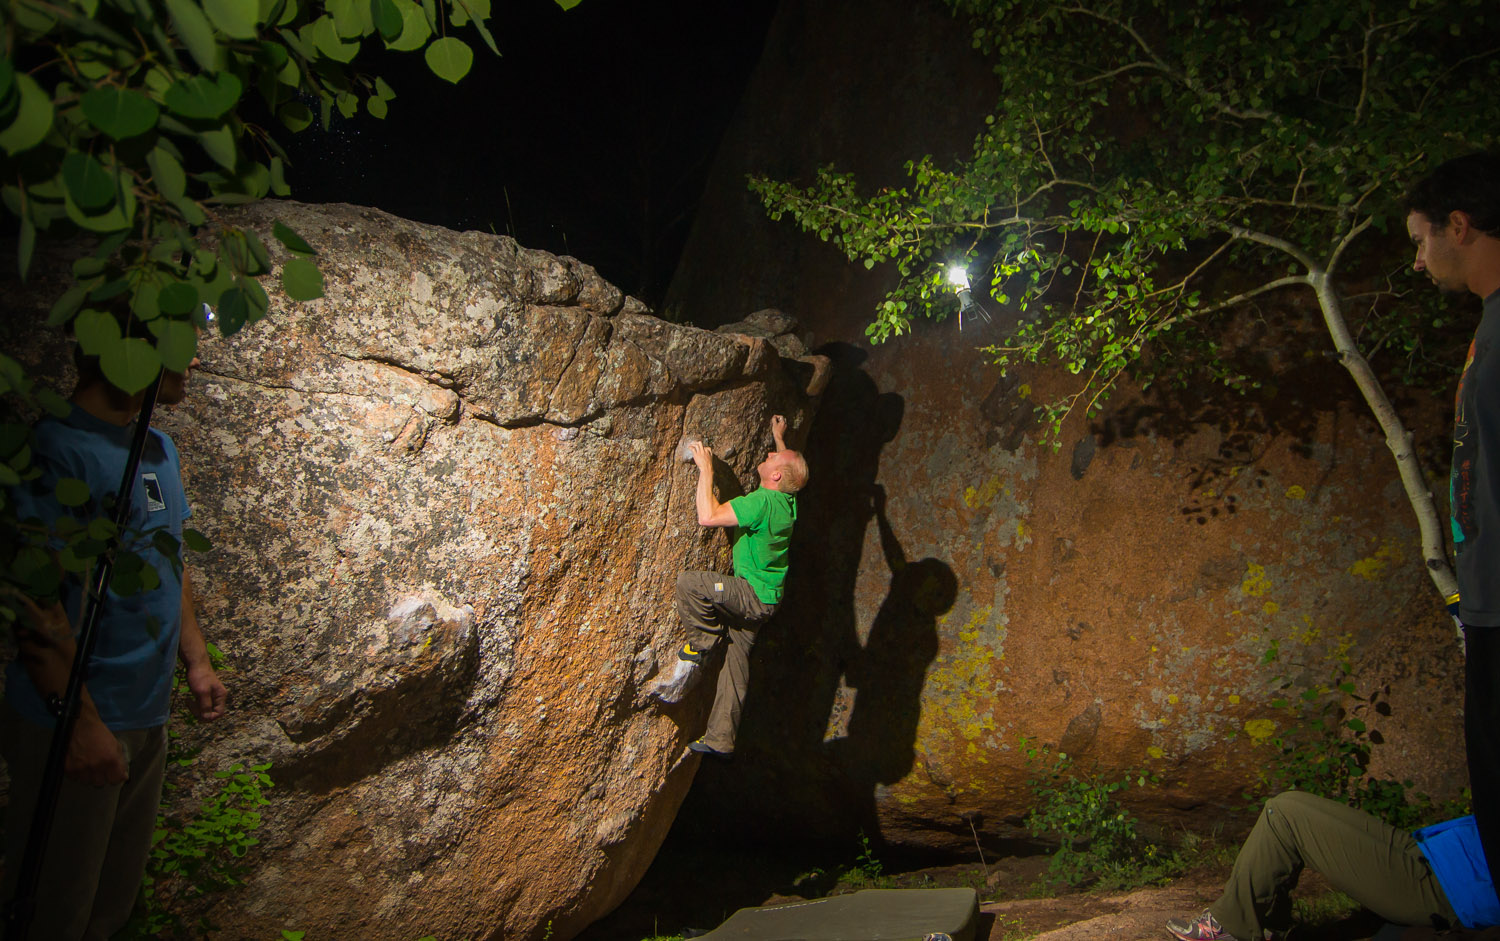 Vedauwoo bouldering at Night